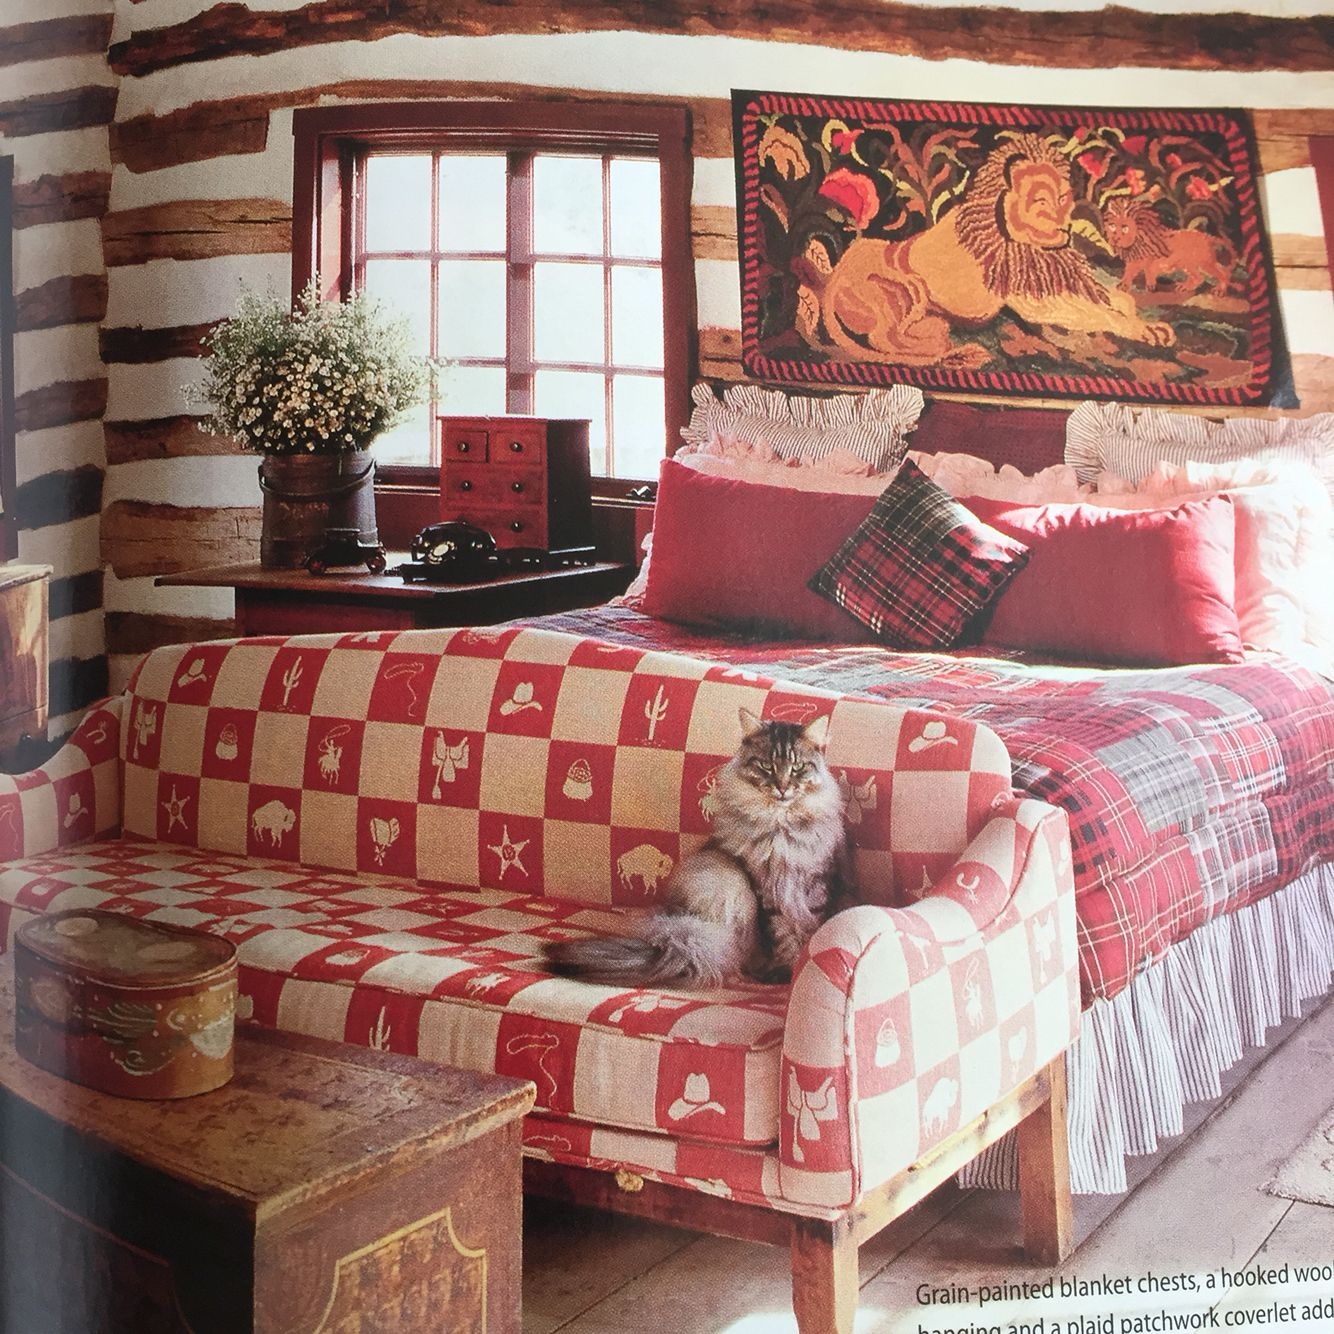 Couch or bench at foot of bed Home decor, Rustic home